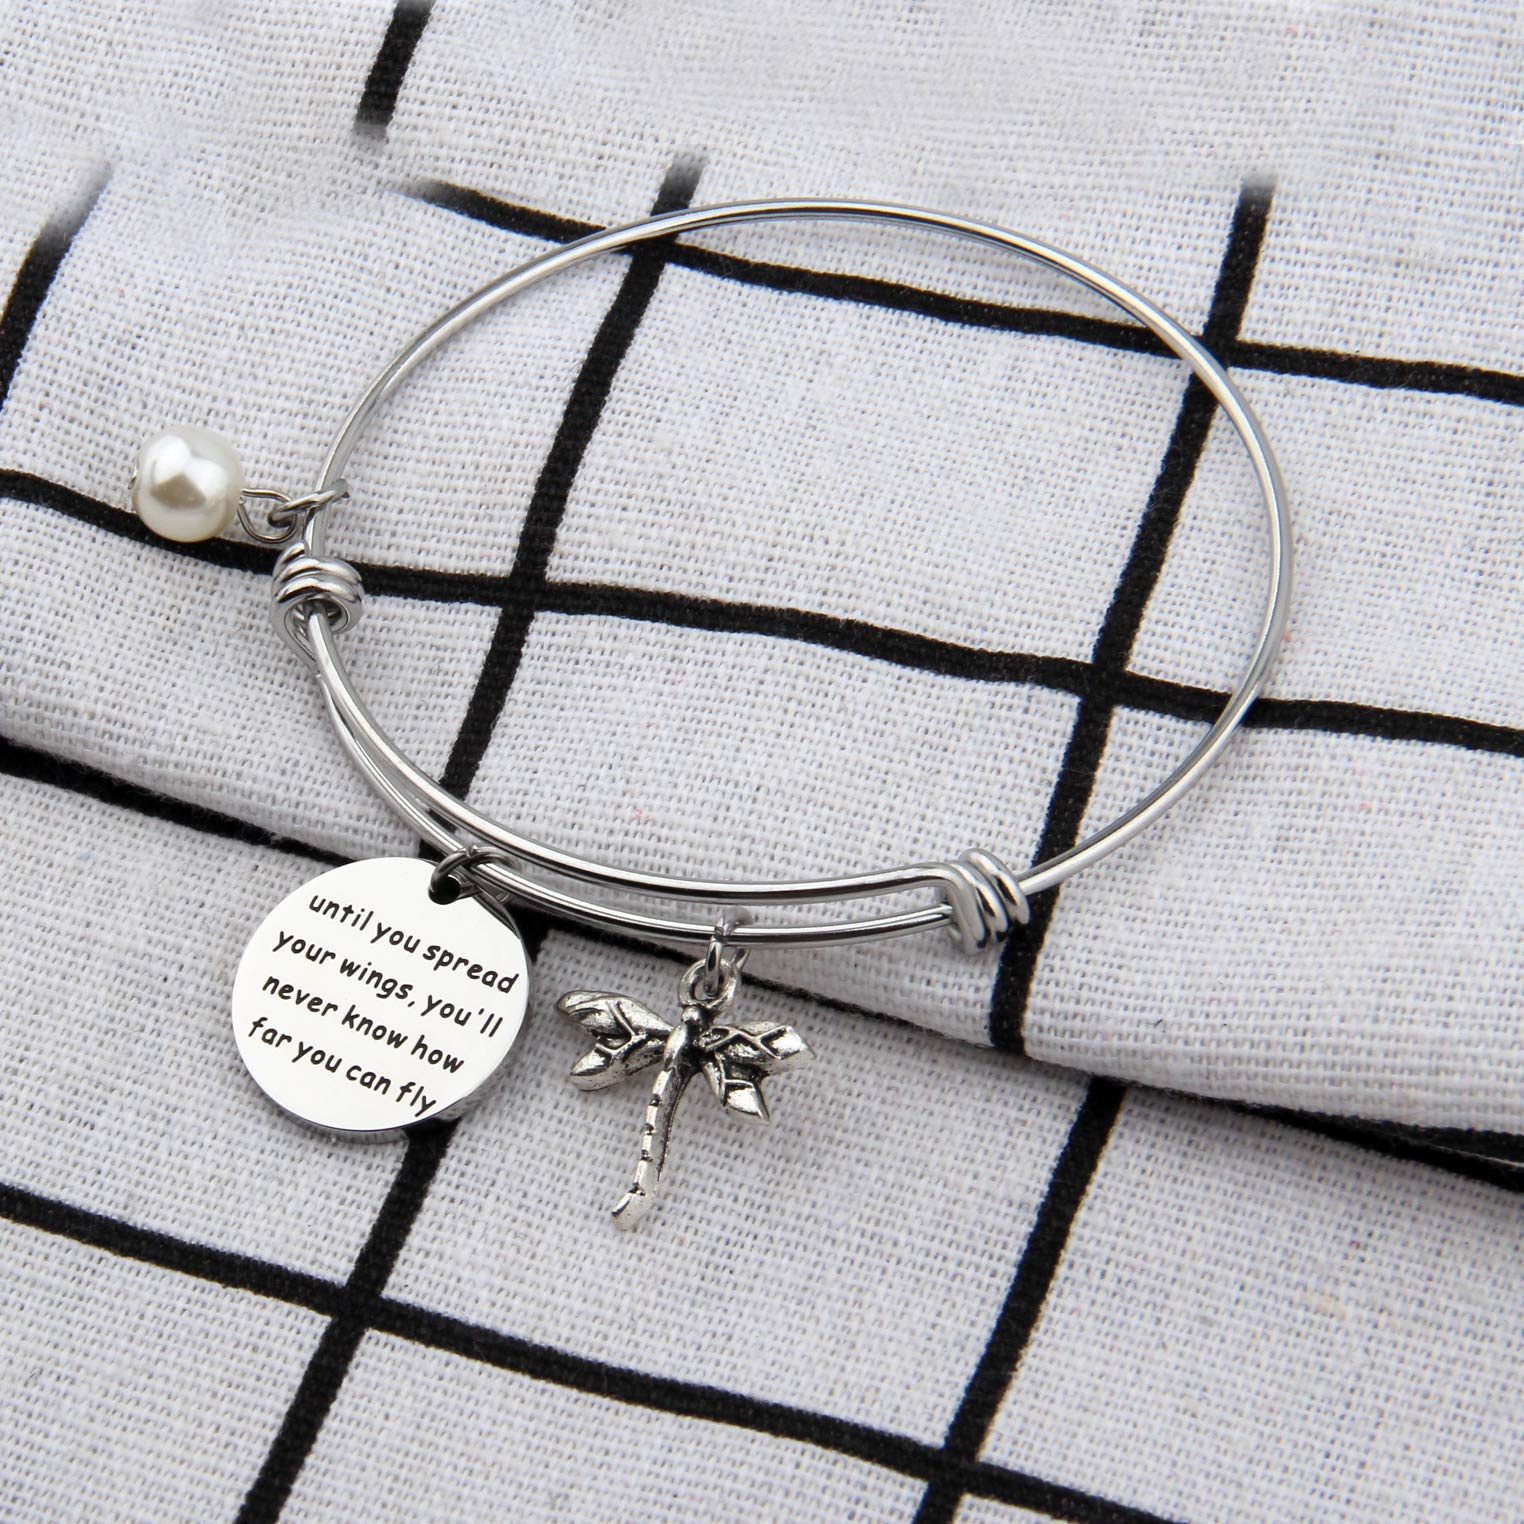 AKTAP Inspirational Jewelry Until You Spread Your Wings You'll Never Know How Far You Can Fly Dragonfly Charm Bracelet Encouragement Gifts for Her (Spread Your Wings Bracelet) by AKTAP (Image #1)